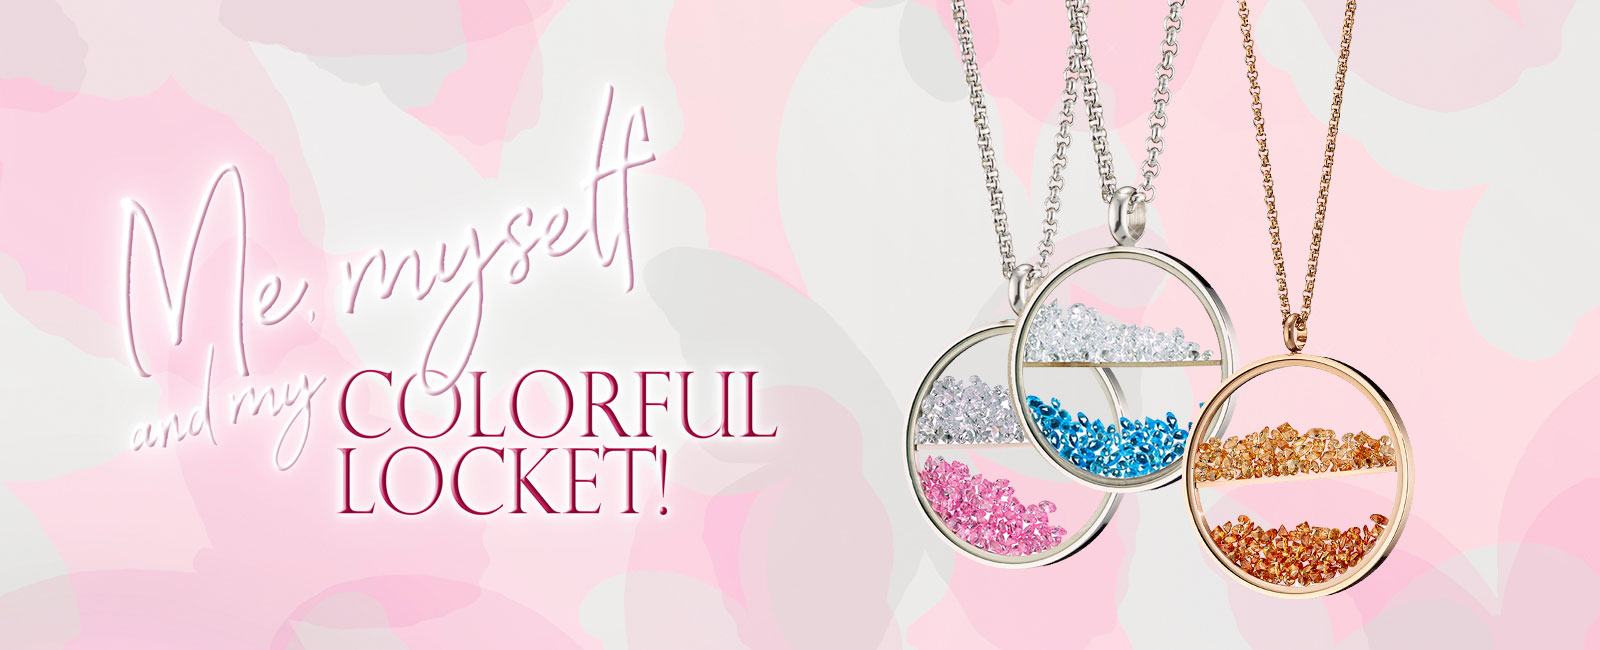 Symbols - Colorful Collection - Loisir